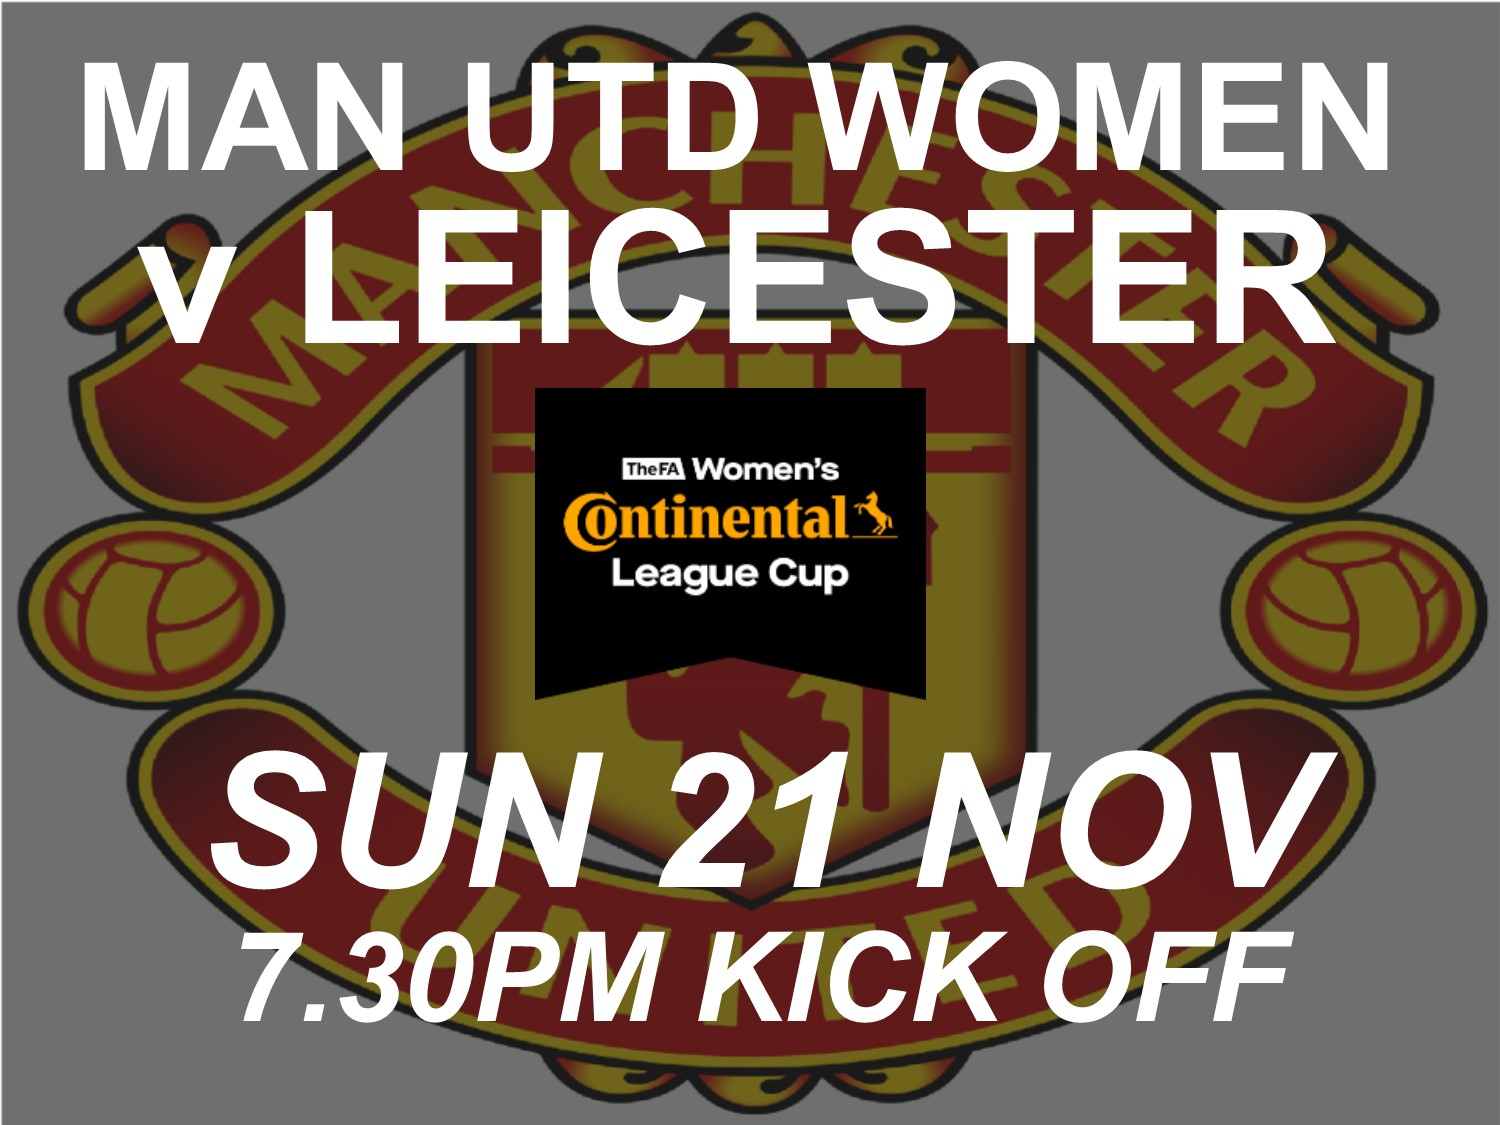 19-11-21 VMS Website Image - MUWFC v Leicester City